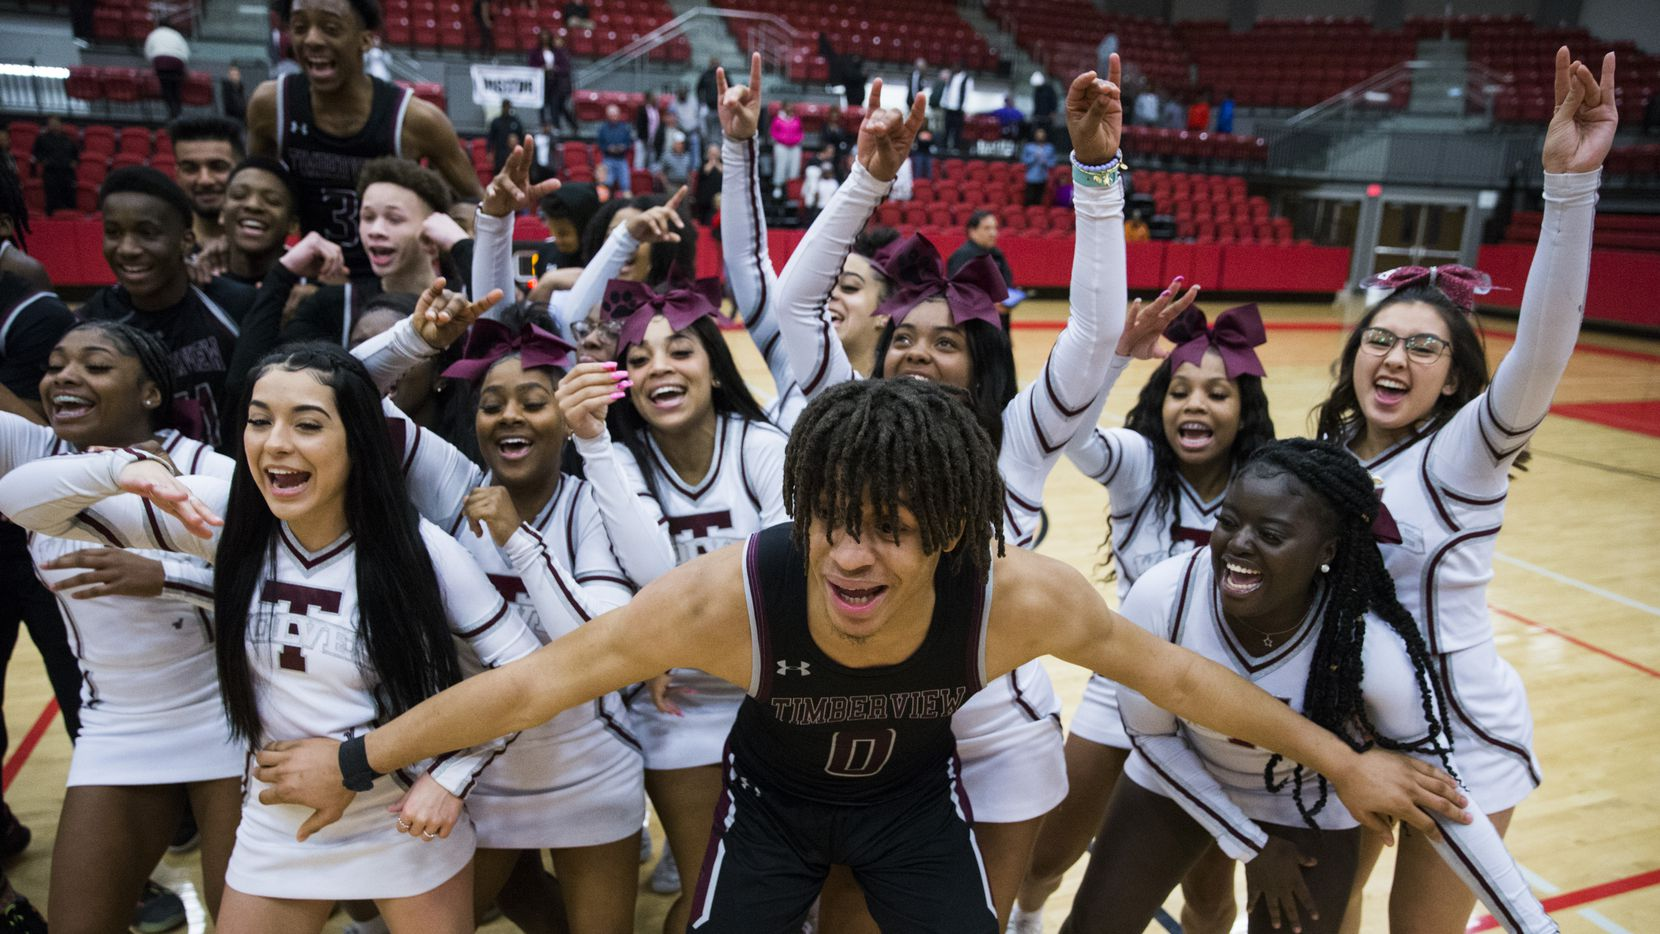 Mansfield Timberview guard Joey Madimba, cheerleaders and other players celebrate a 40-36 win over Denton Braswell in Thursday's Class 5A area-round playoff game at Coppell High School.